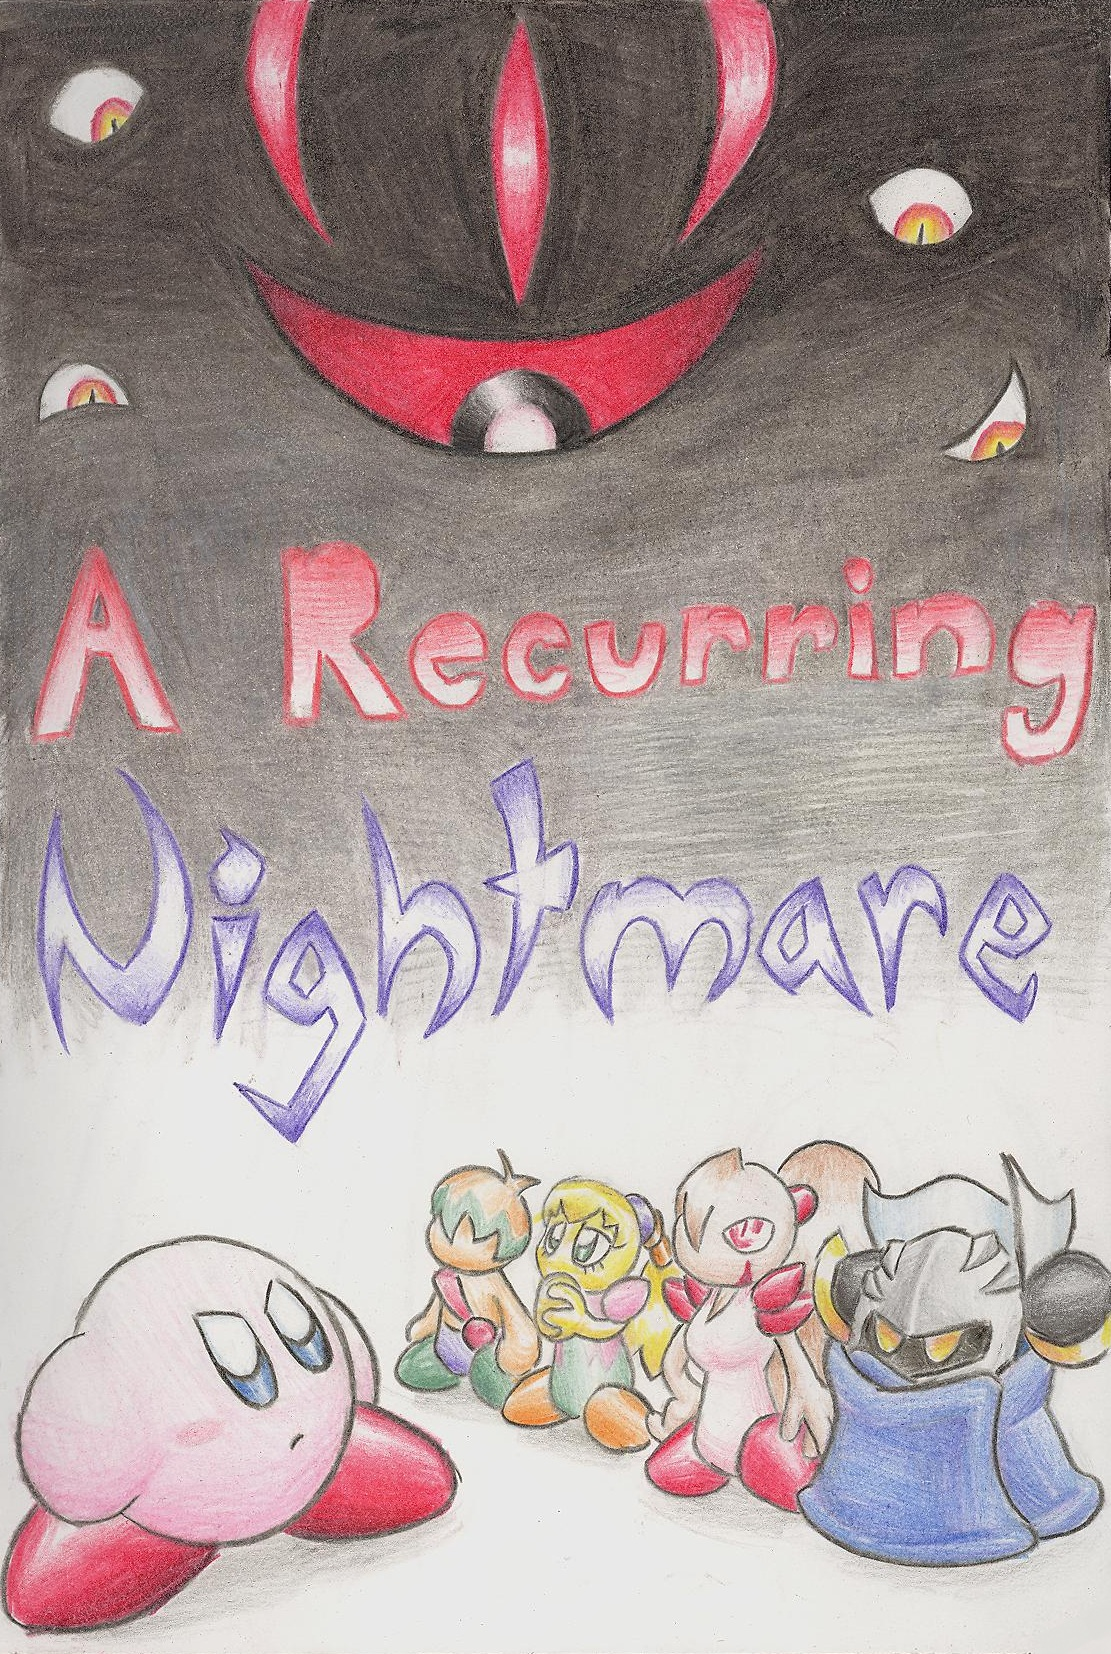 Hoshi No Kaabii: A Recurring Nightmare by ssbbforeva